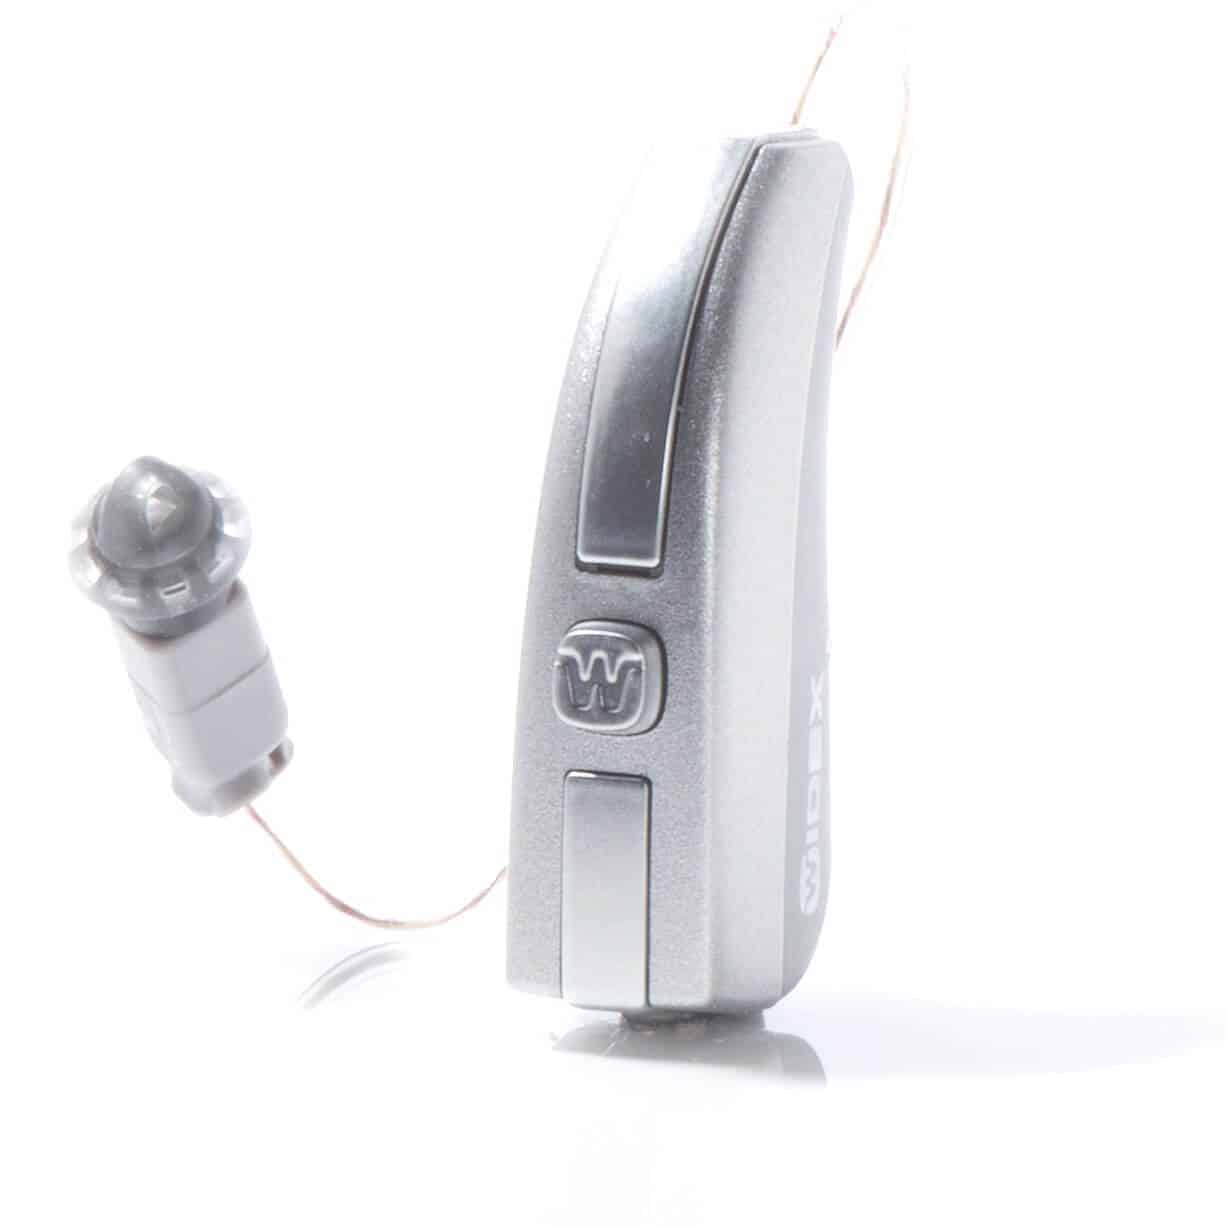 Widex Hearing Aids   Audiology Technologists In Coweta, GA